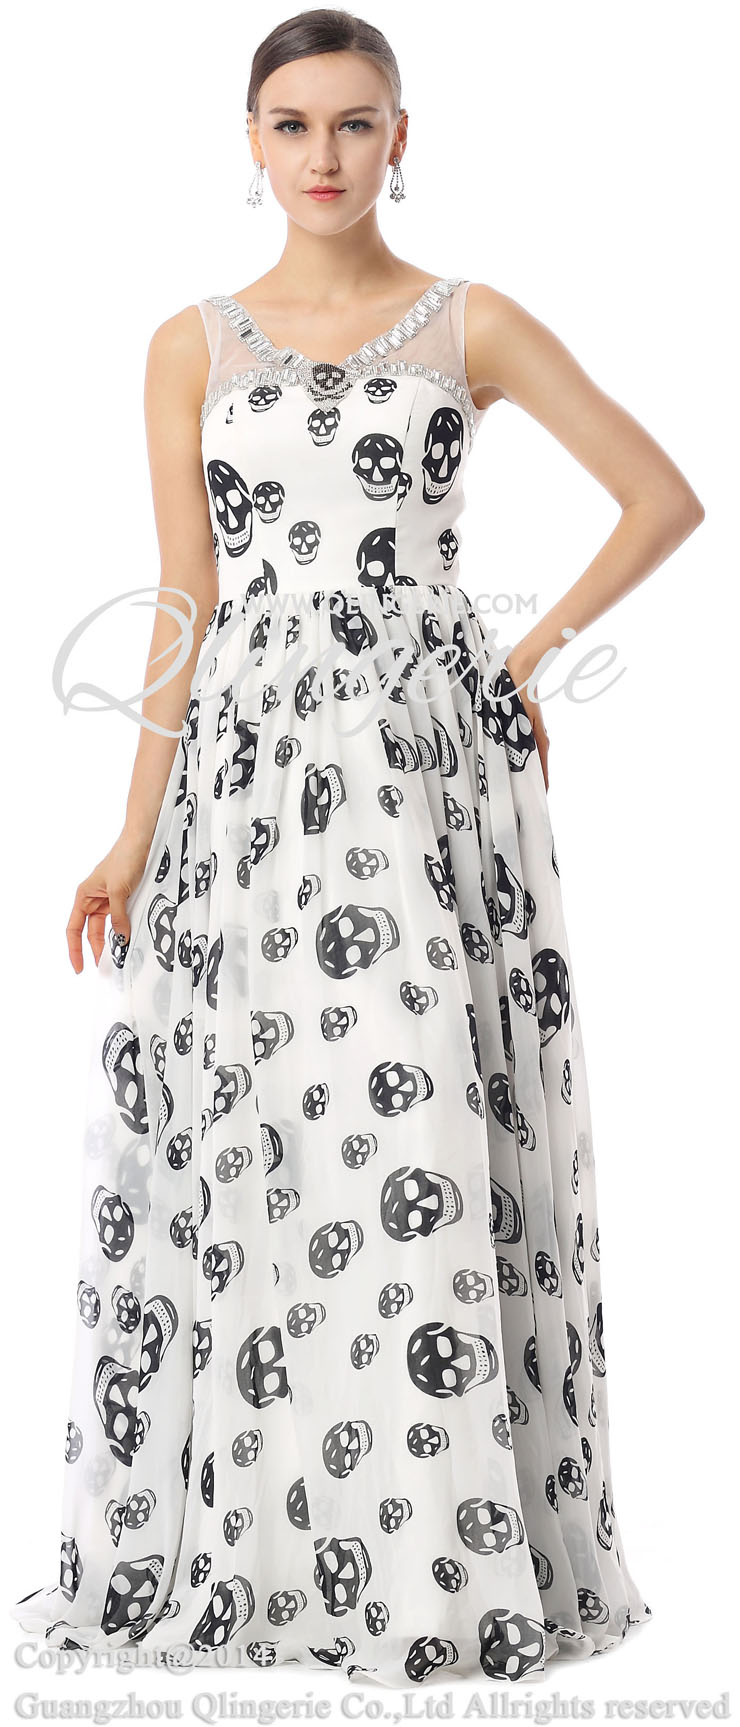 Fashion Party Dresses, Girls Dresses for cheap, Funny Prom Dress, Long Party Dresses, 2015 Dresses on sale,  Hot Sale Spring Dresses, #F30023